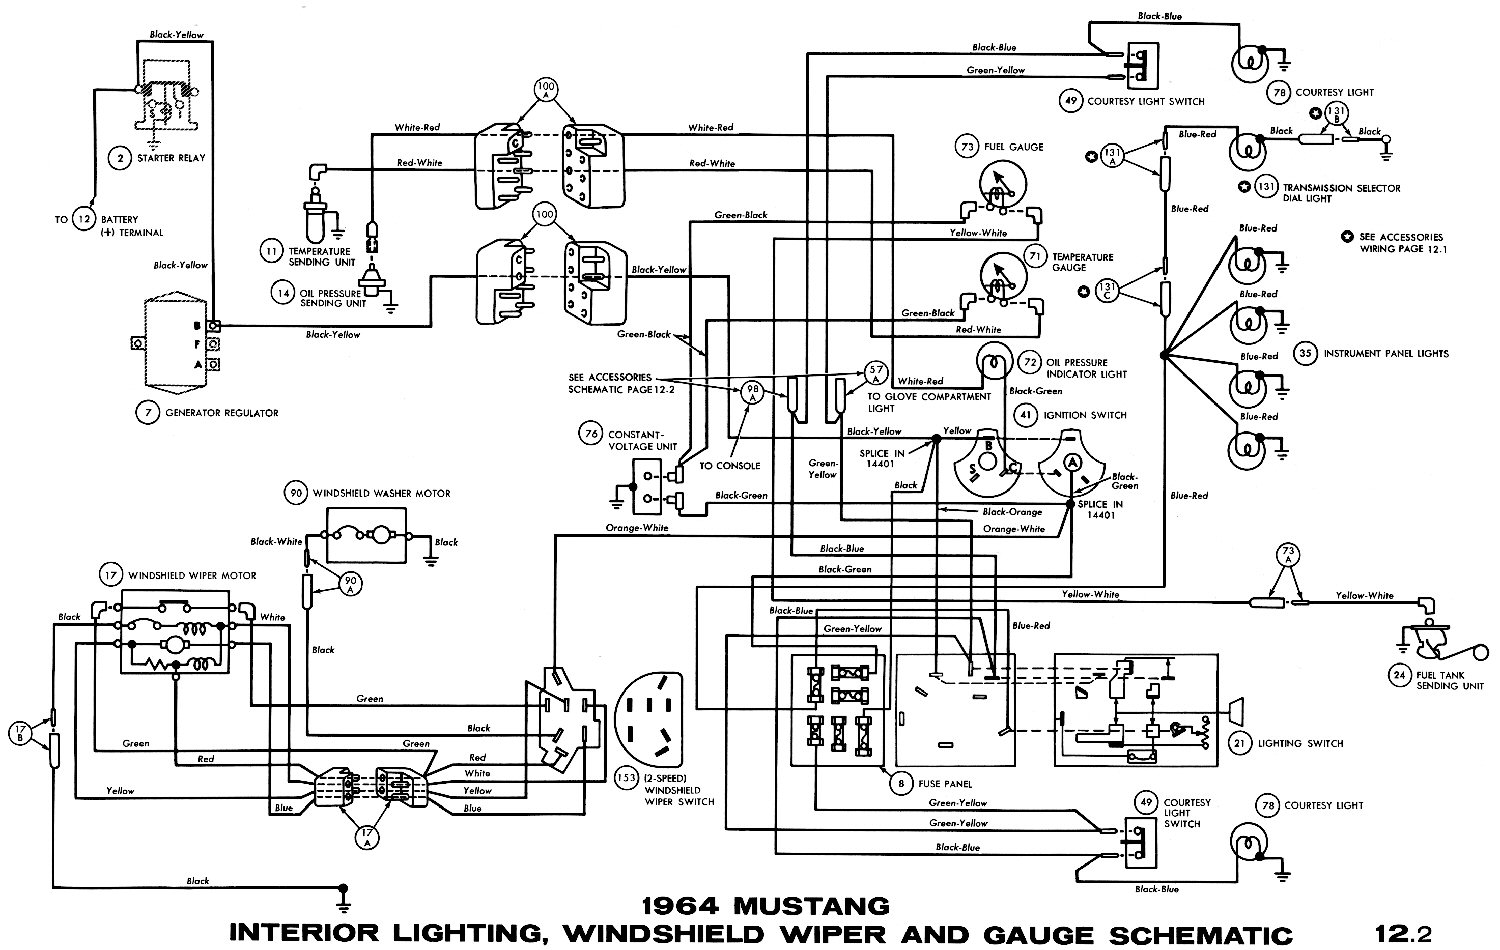 1964k 1966 mustang wiring diagram 1967 mustang wiring schematic \u2022 wiring 1966 mustang fuse box diagram at bakdesigns.co